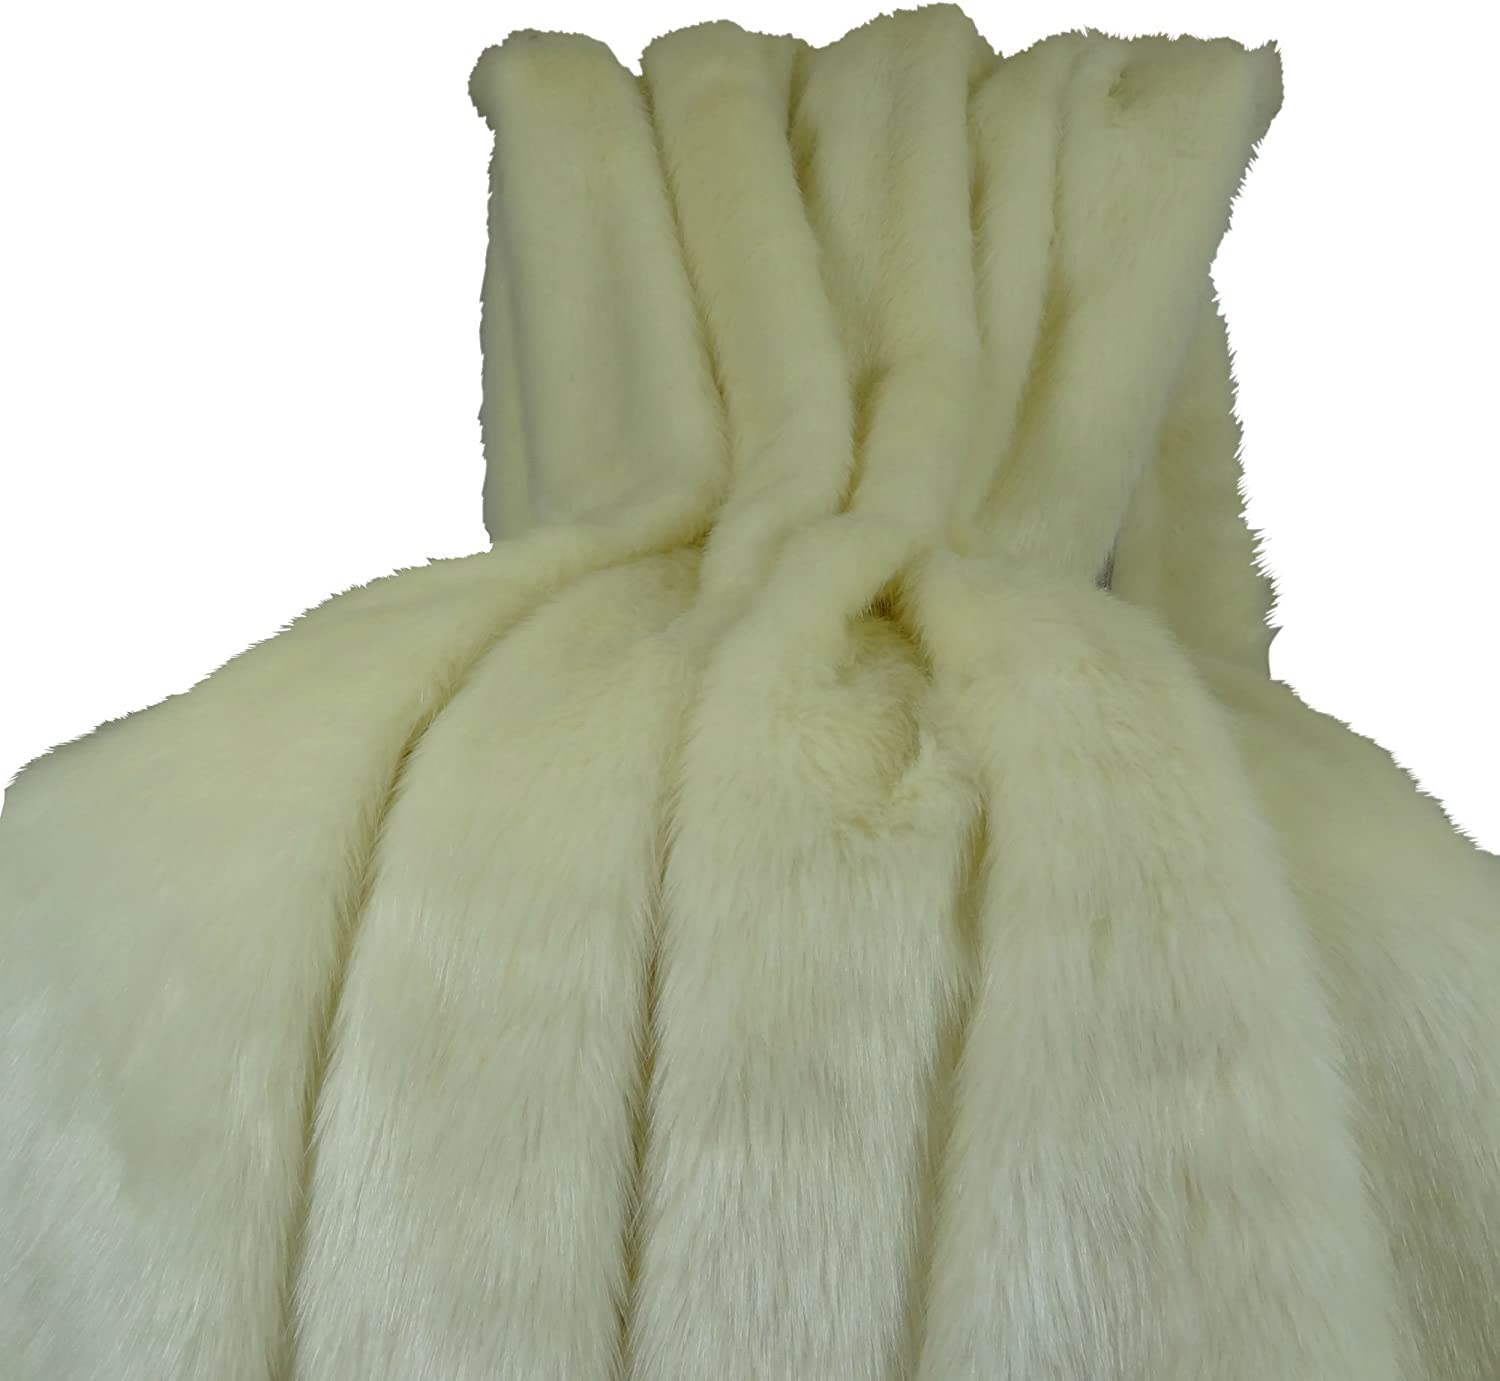 Amazon Com Thomas Collection Arctic Fox Faux Fur Throw Blanket Bedspread Arctic Creamy White Arctic Fox Fur Luxury Soft Fox Faux Fur Heavy Throw Made In Us 16414 Home Kitchen